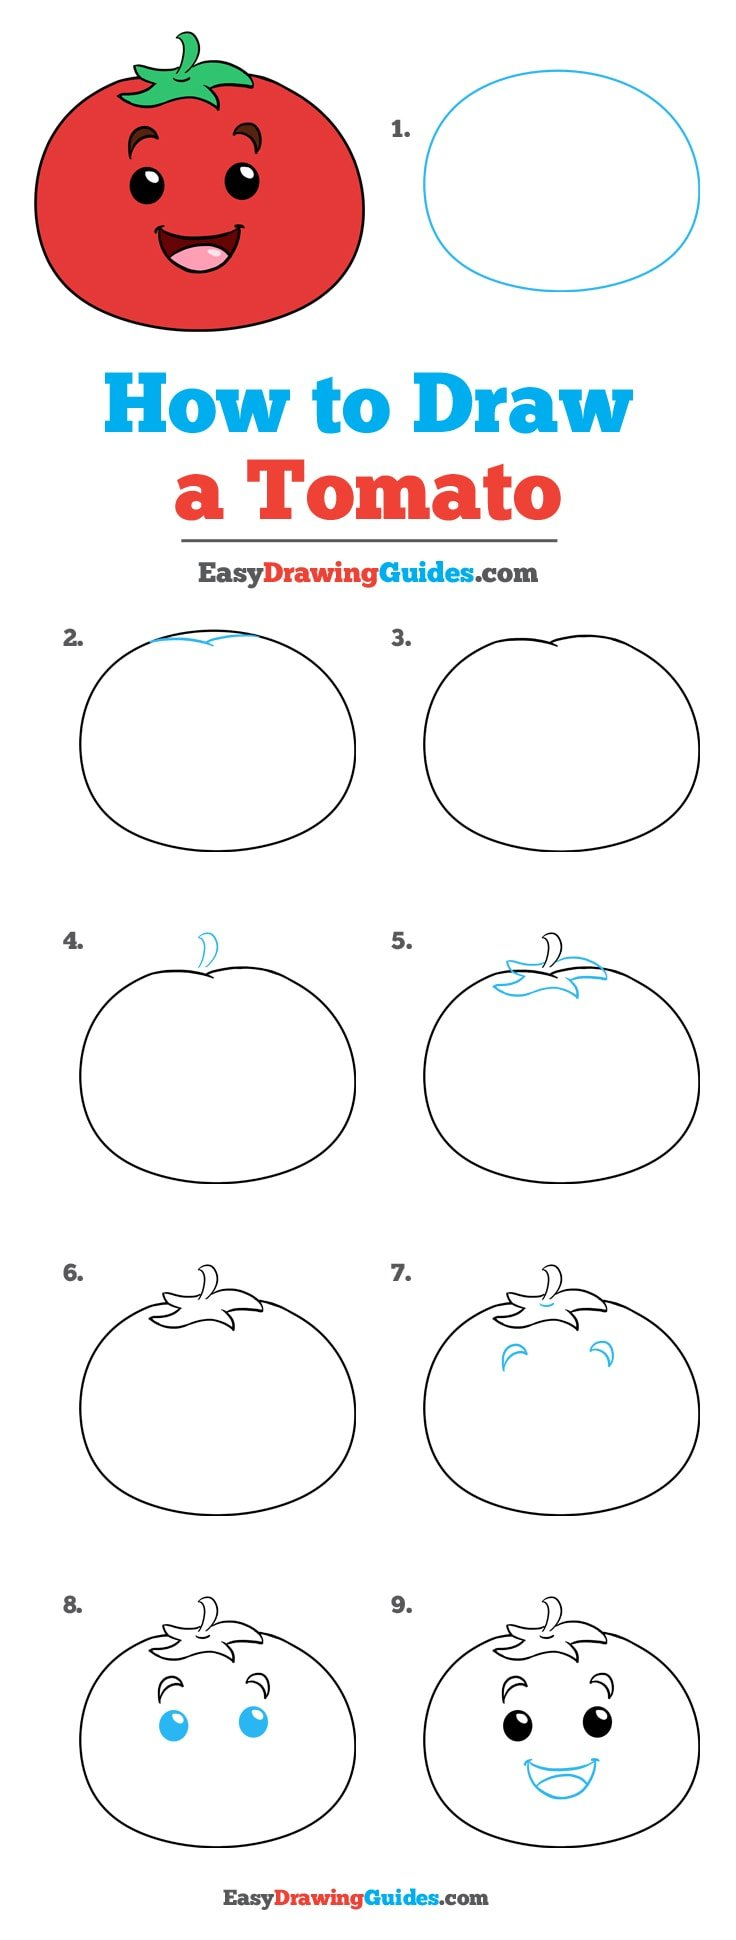 How to Draw Tomato